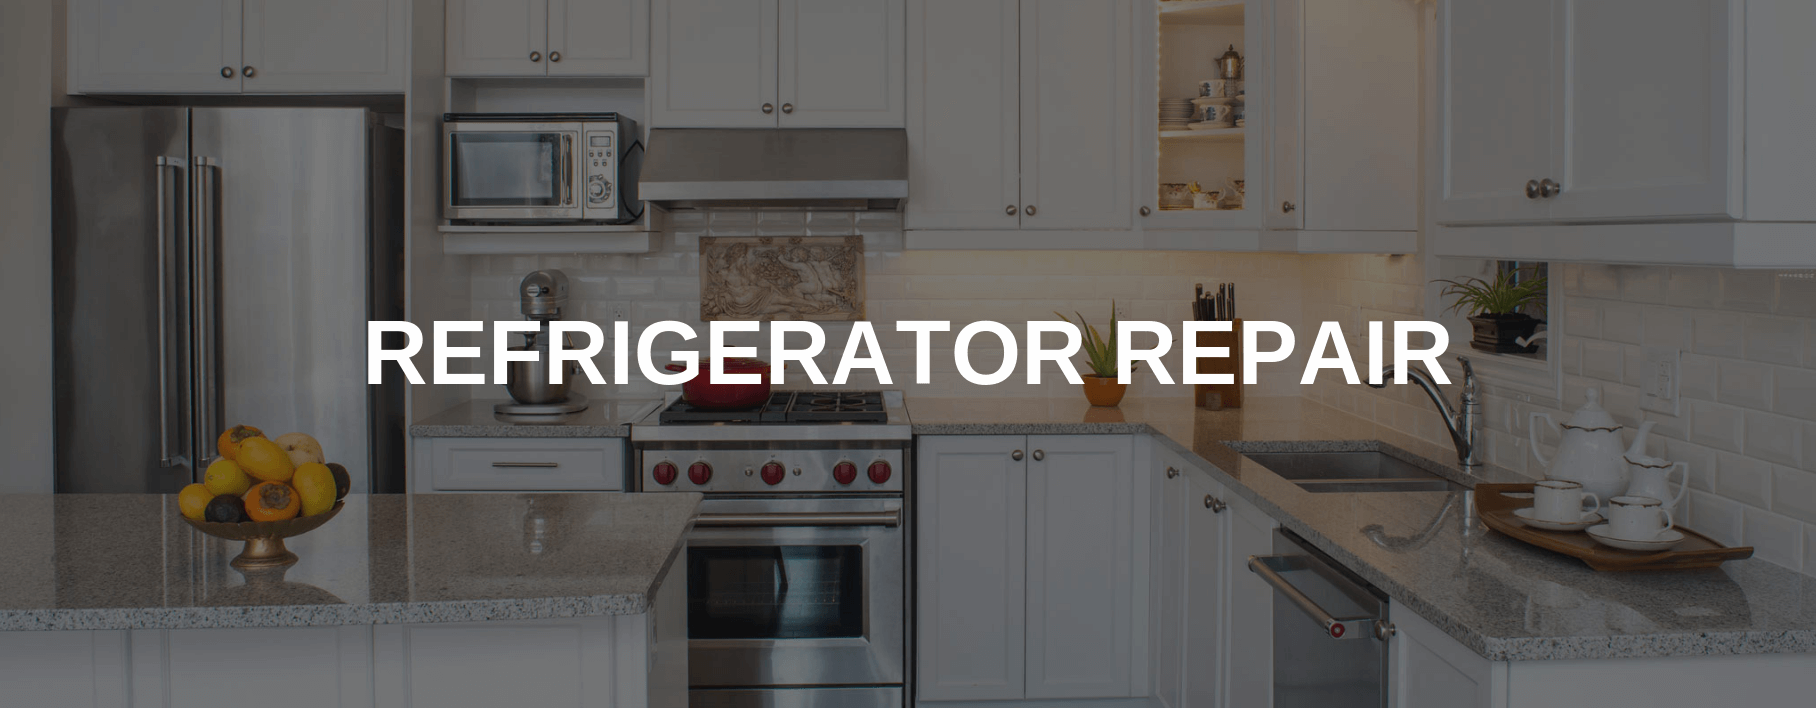 refrigerator repair arlington